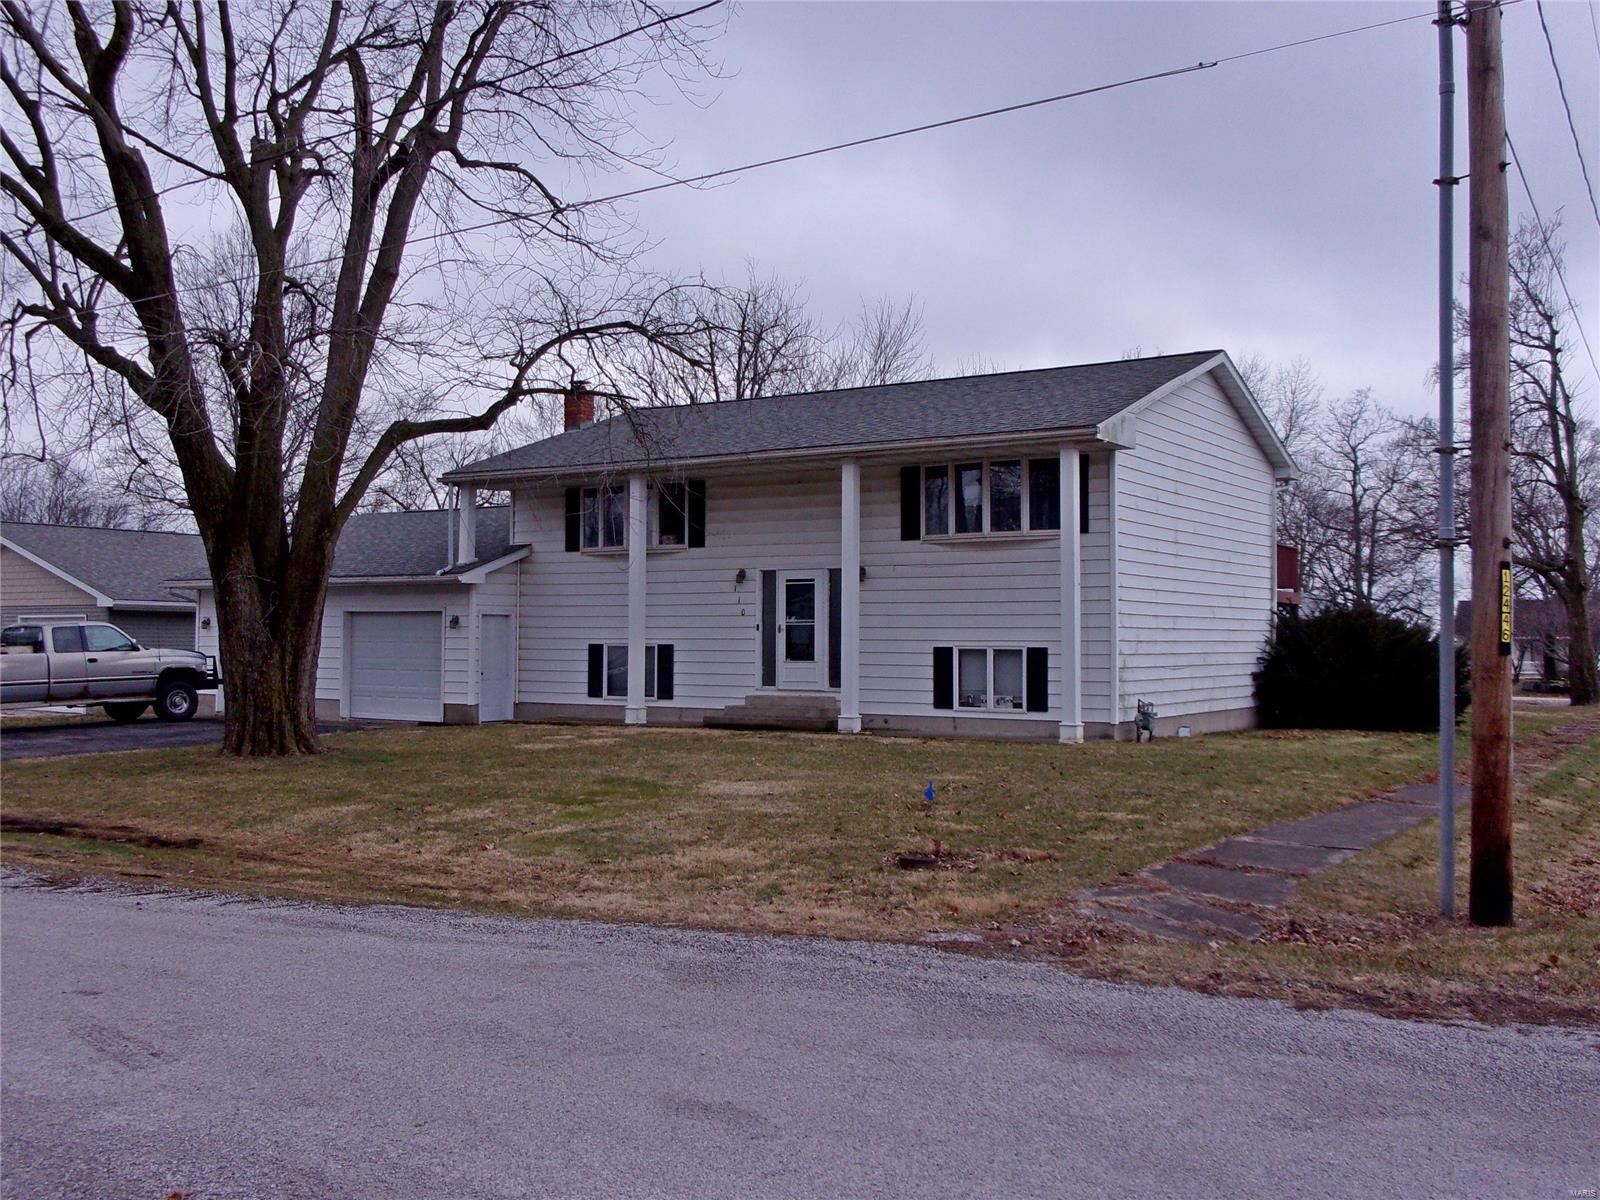 110 S 6th Street Property Photo - Witt, IL real estate listing